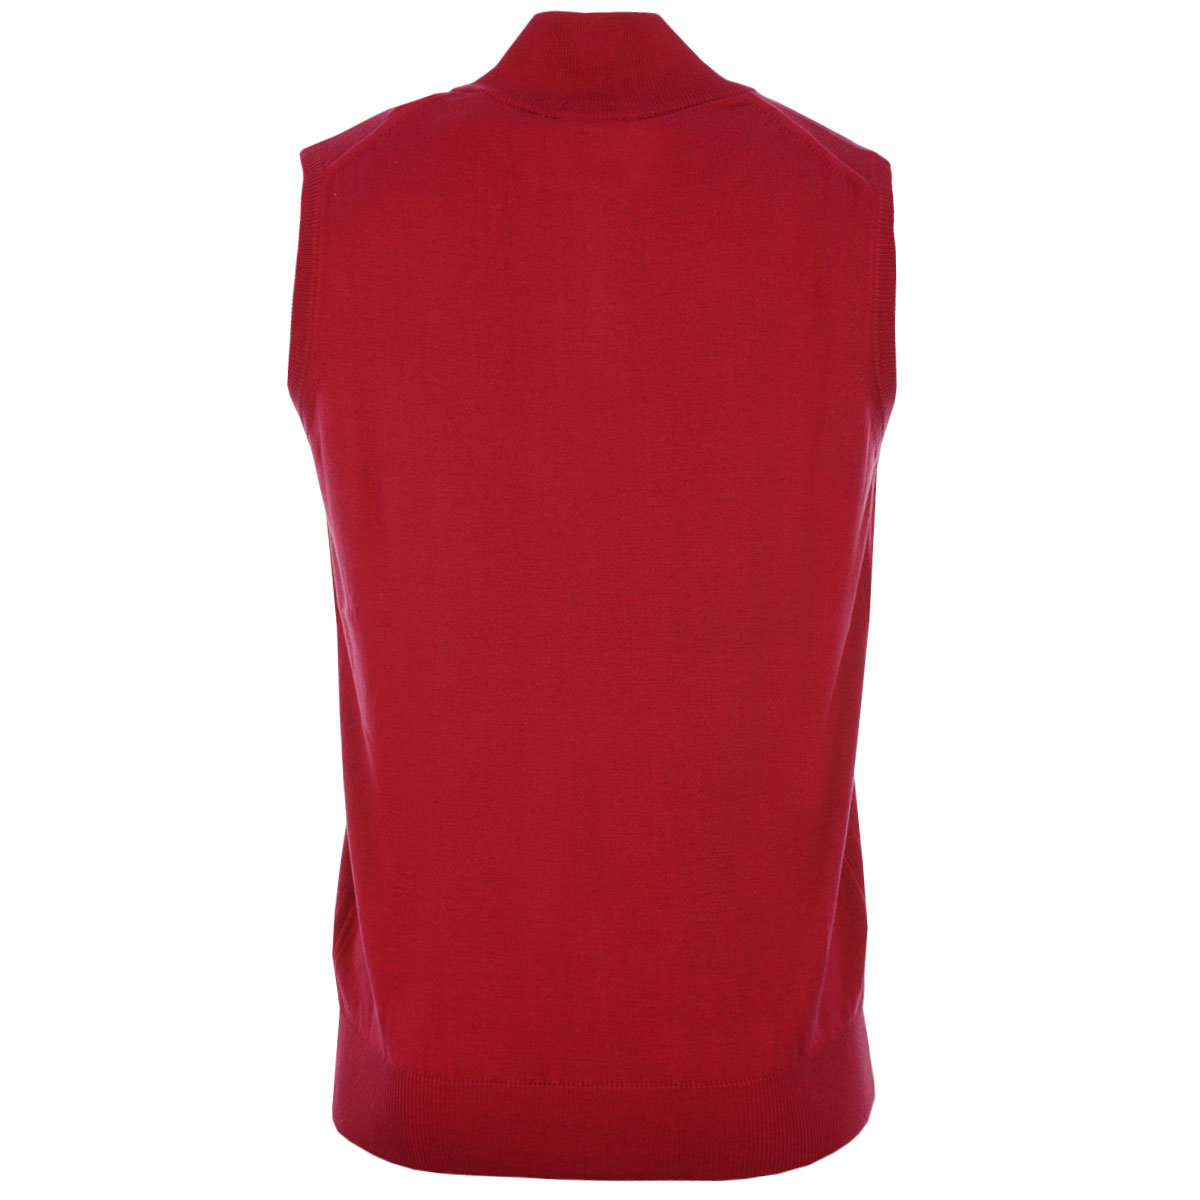 Calvin-Klein-Golf-Mens-CK-V-Neck-Sleeveless-Sweater-Vest-Gilet-27-OFF-RRP thumbnail 3